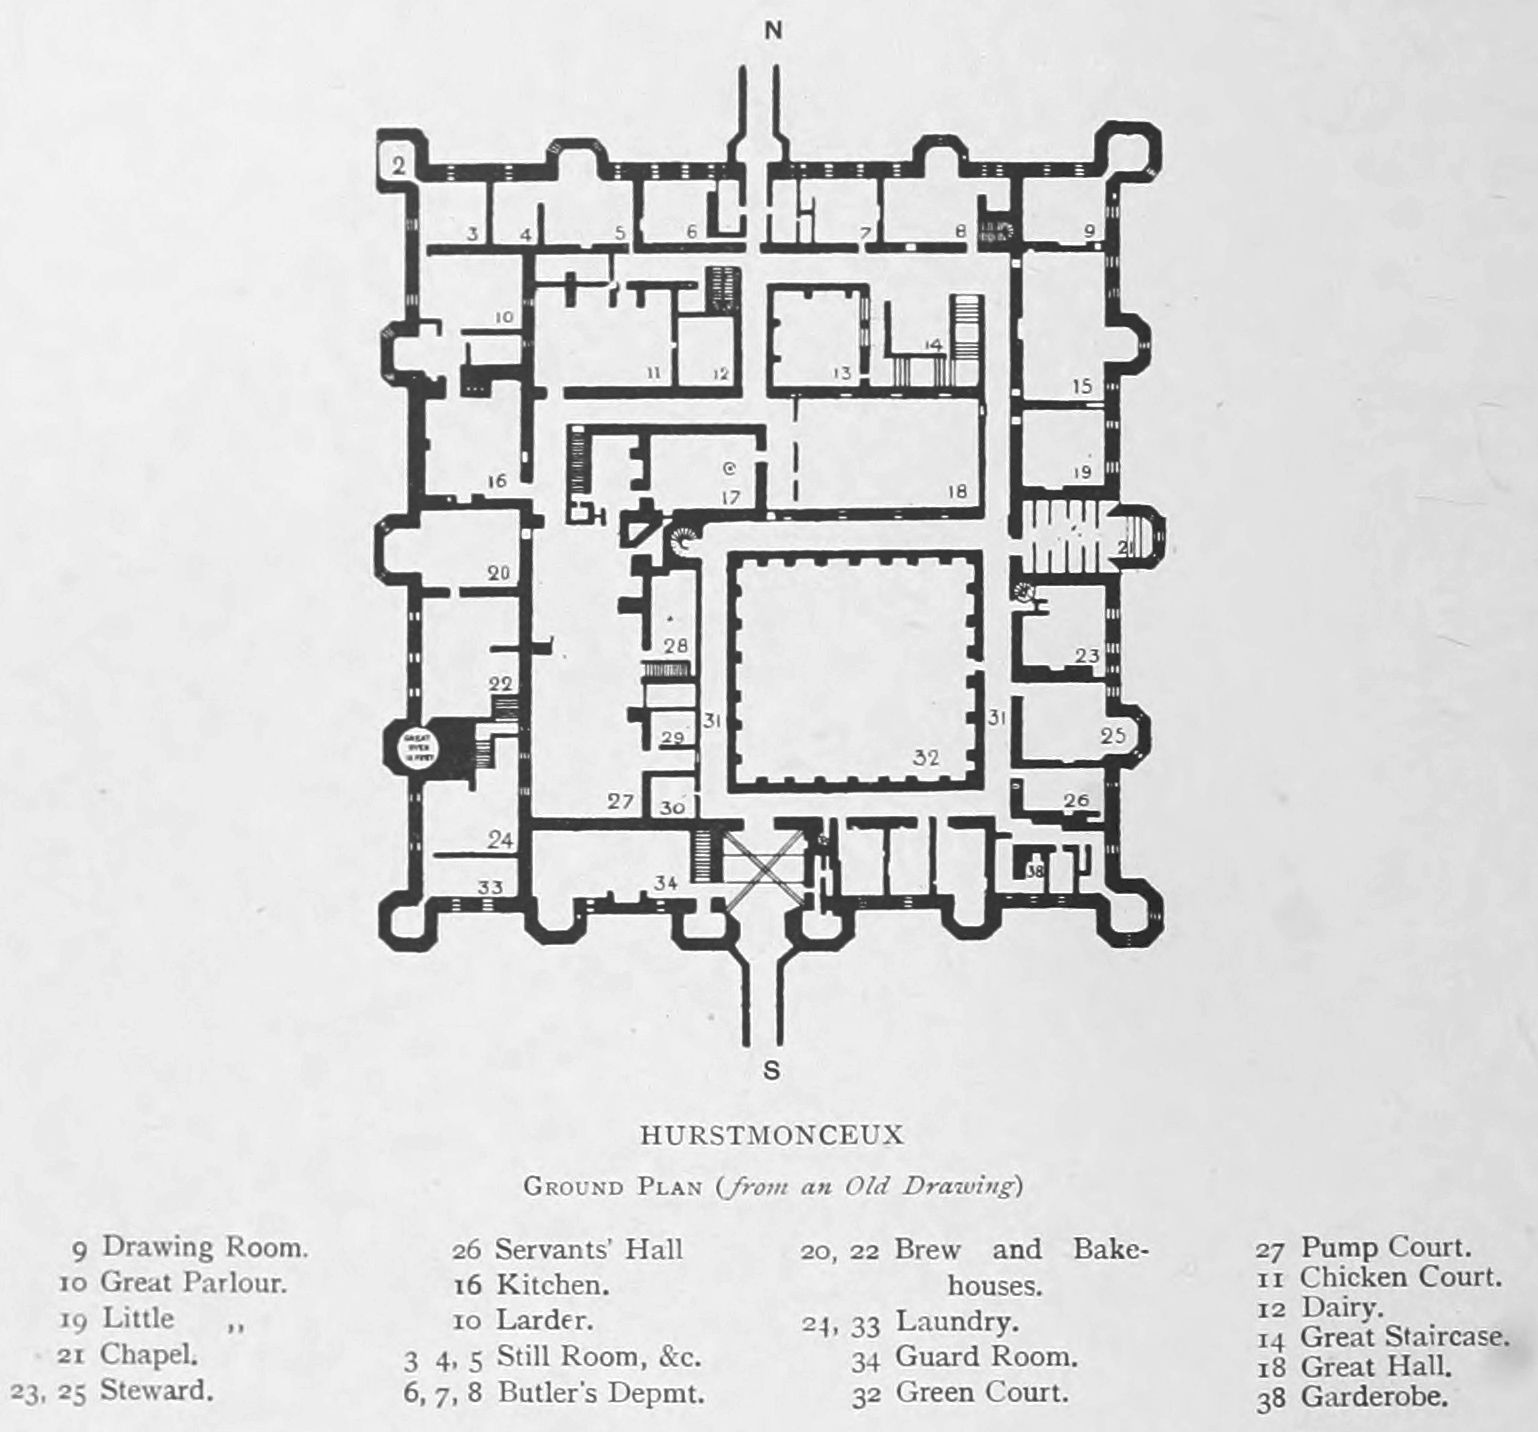 Hurstmonceux 02 Jpg 1538 1432 Castle Floor Plan Castle Plans How To Plan